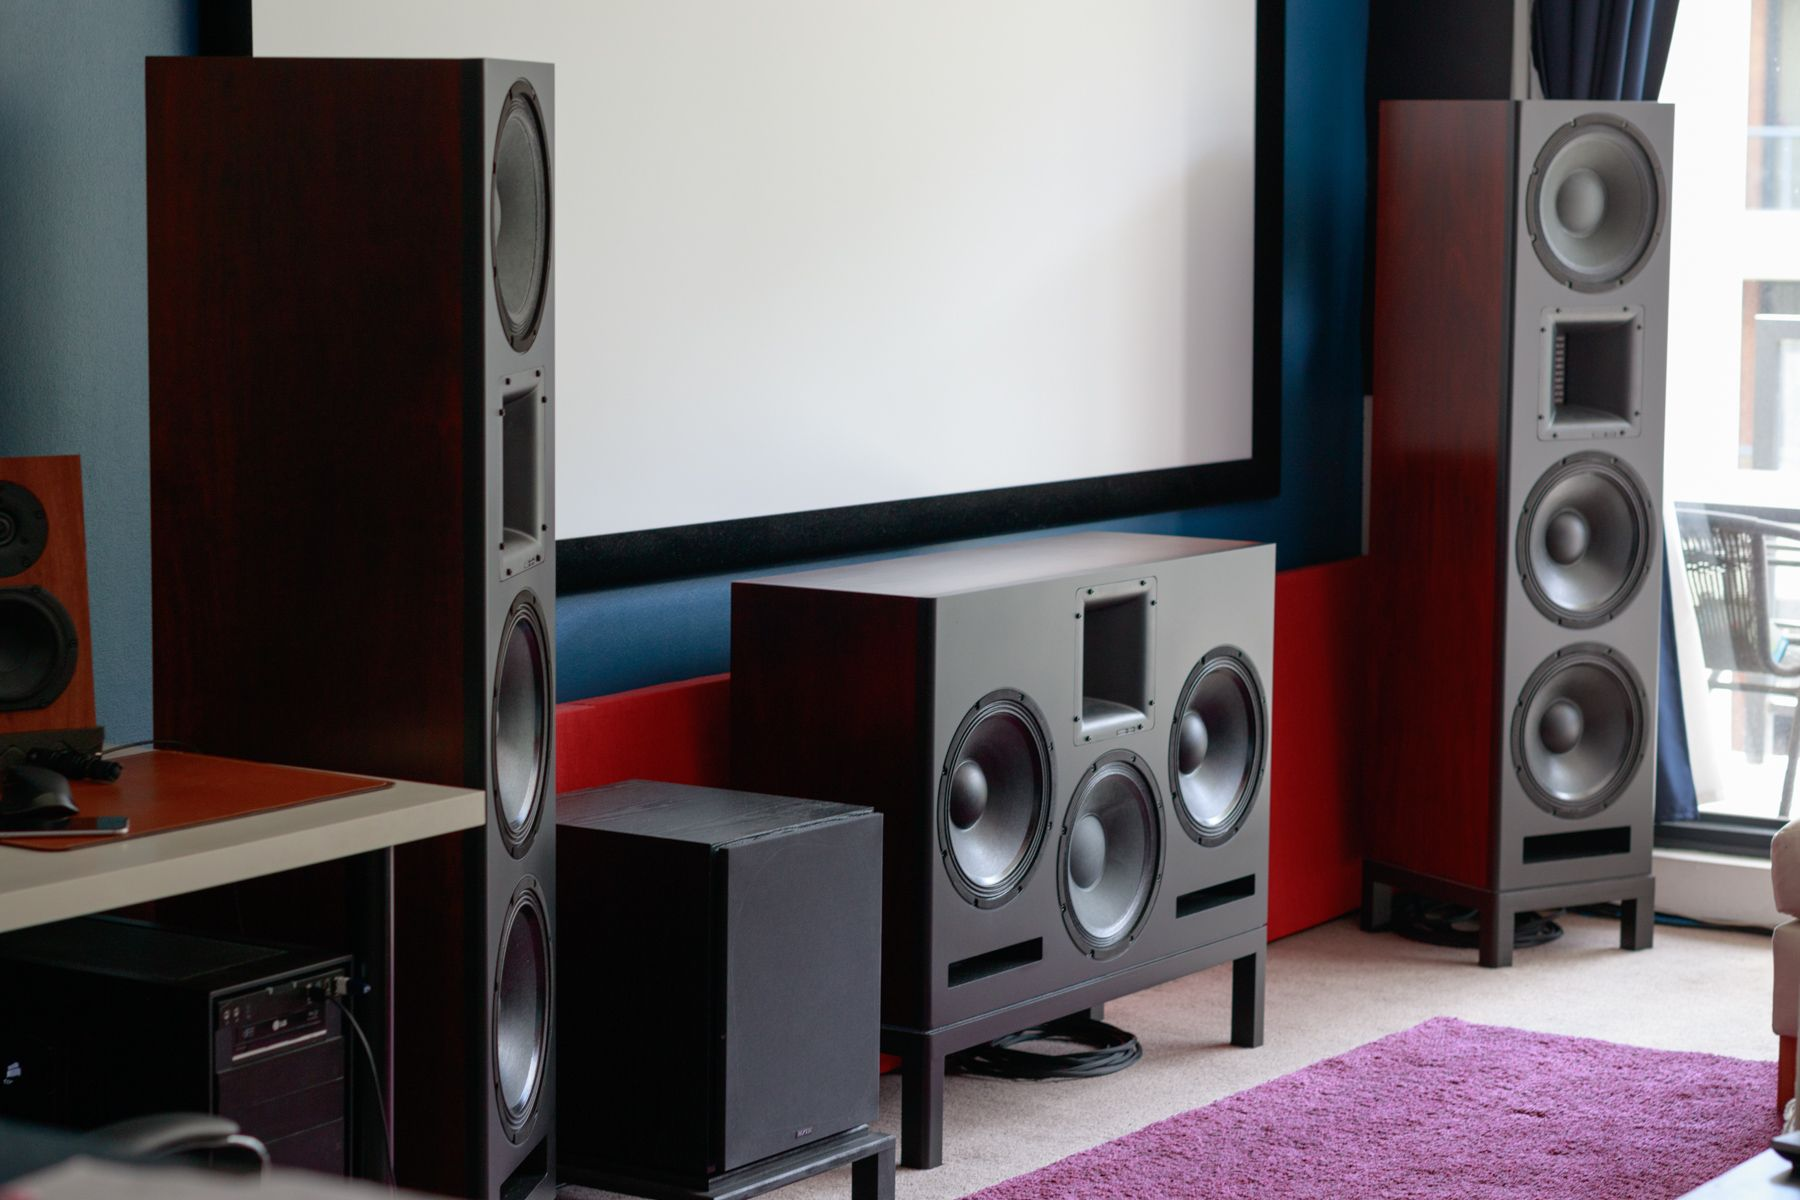 Avs forum home theater discussions and reviews diy